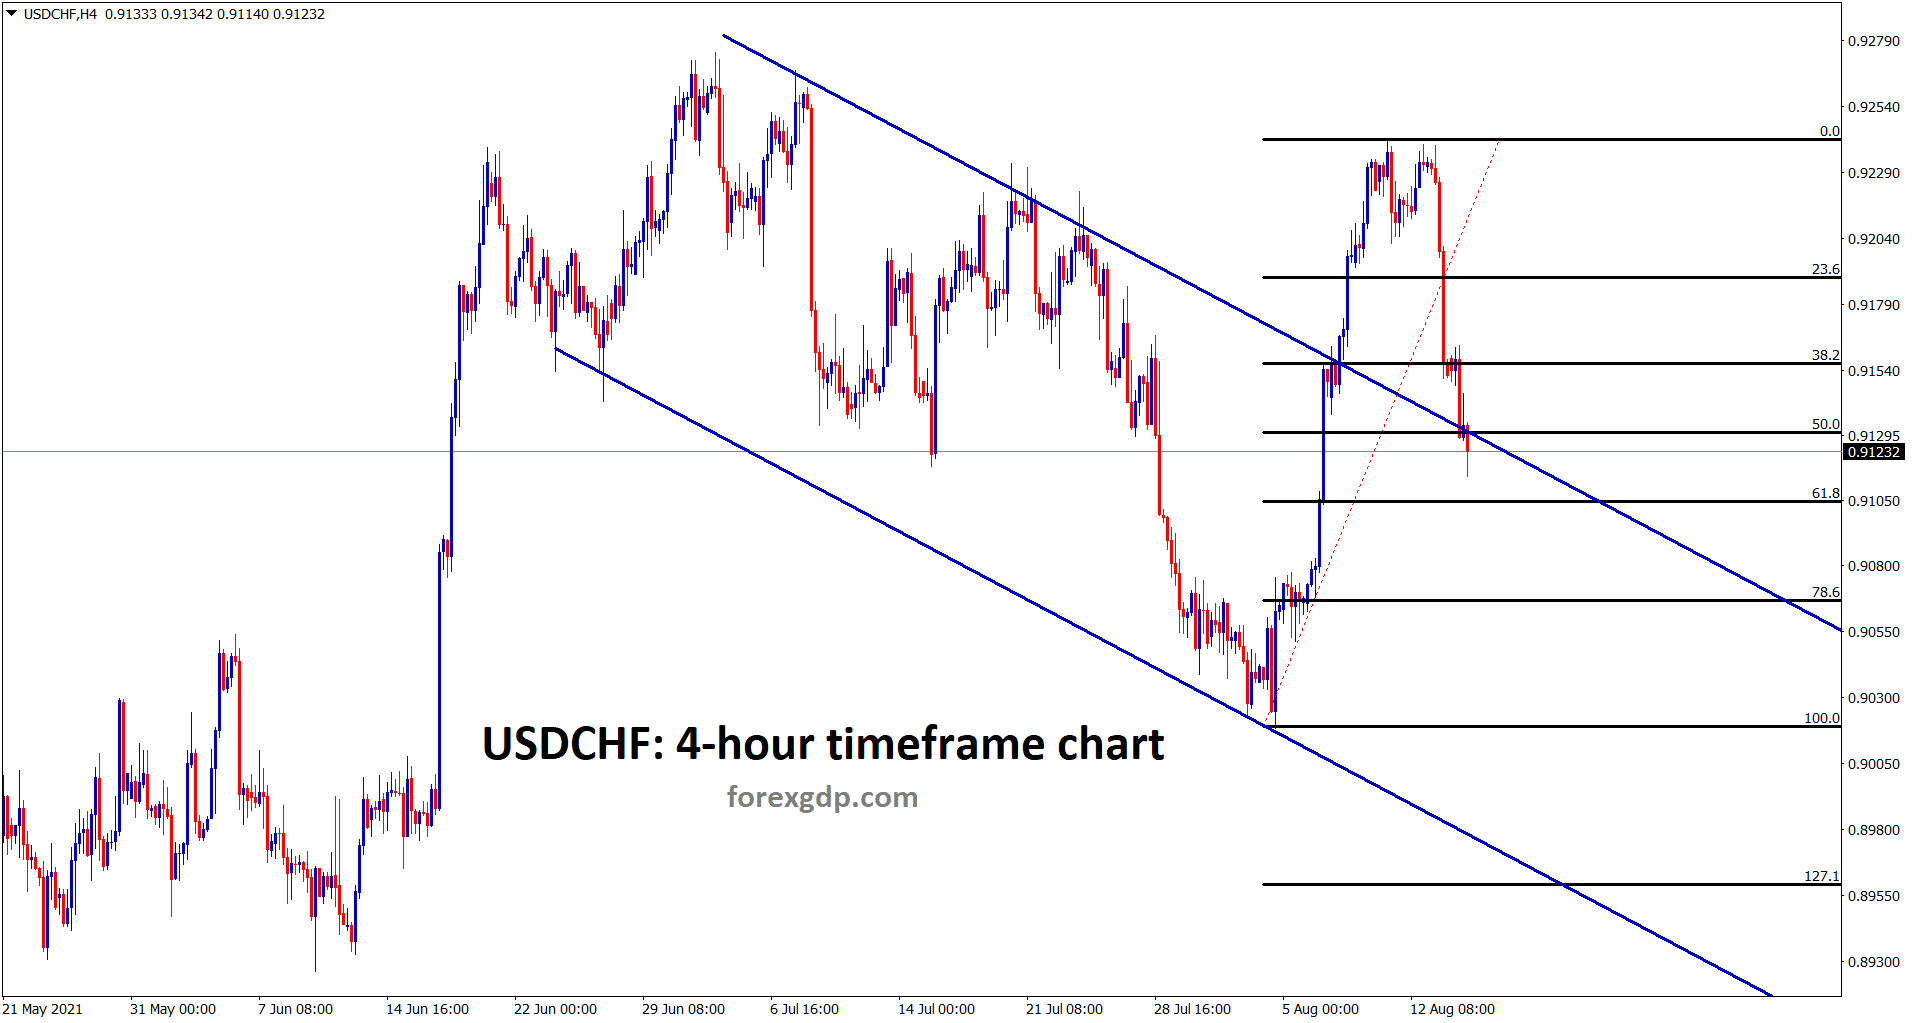 USDCHF is at the retest area of the old broken descending channel